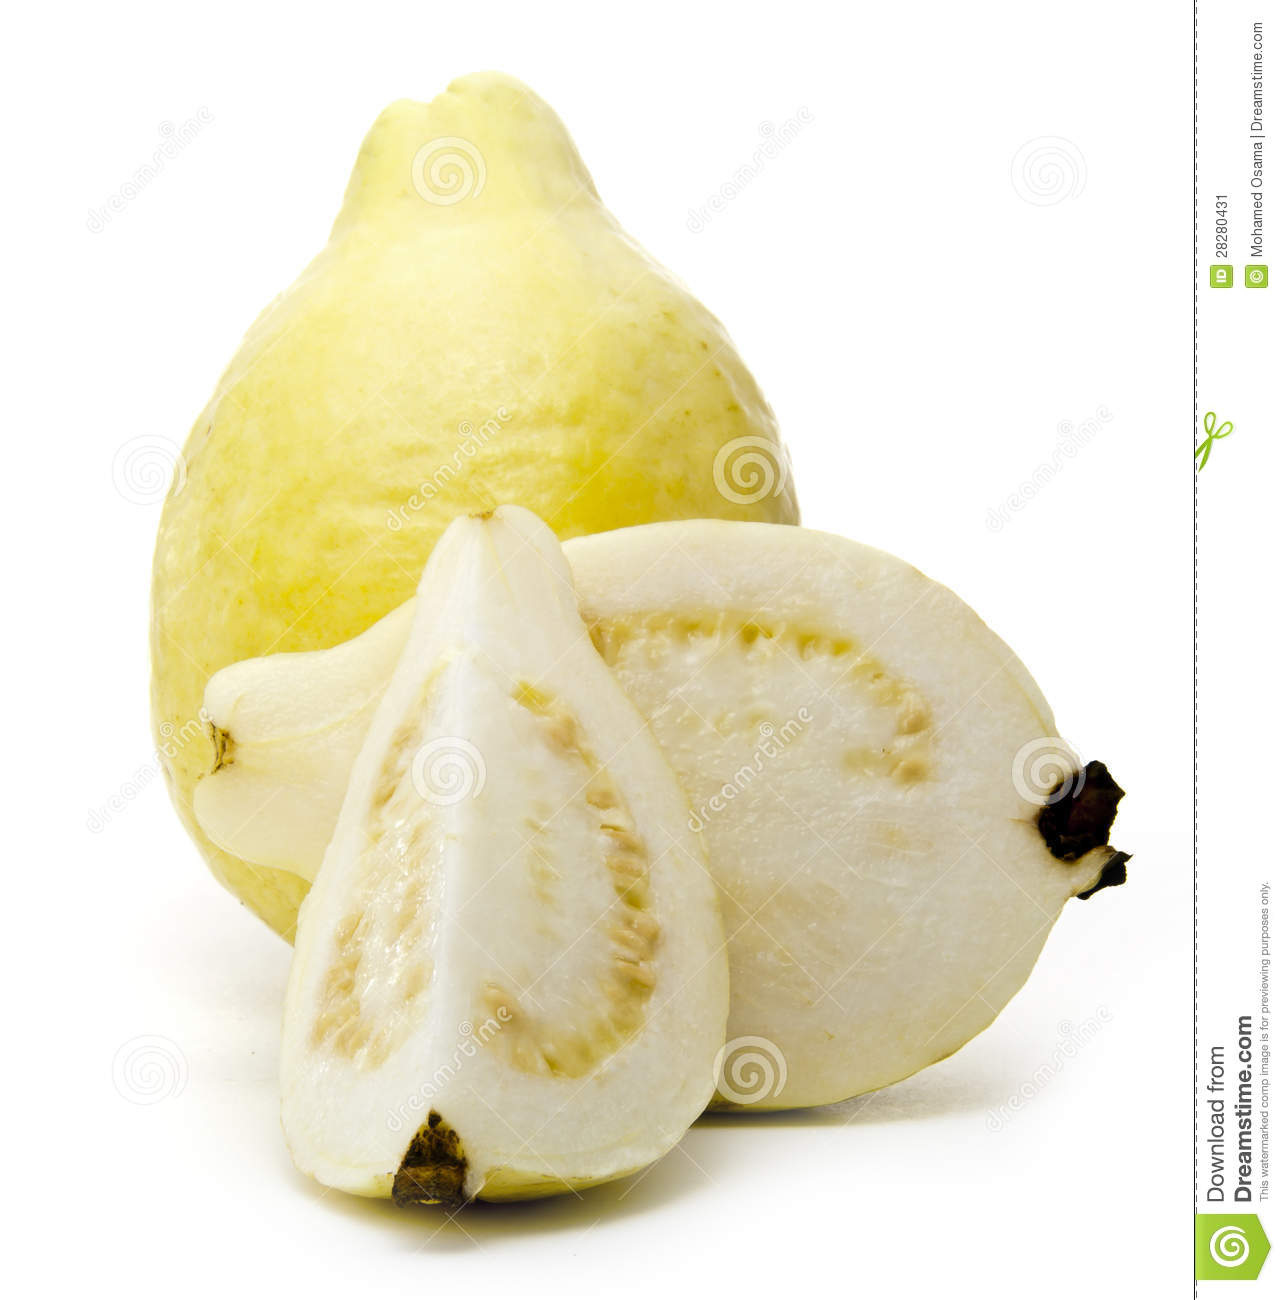 White Guava Full And Sliced Stock Image   Image  28280431